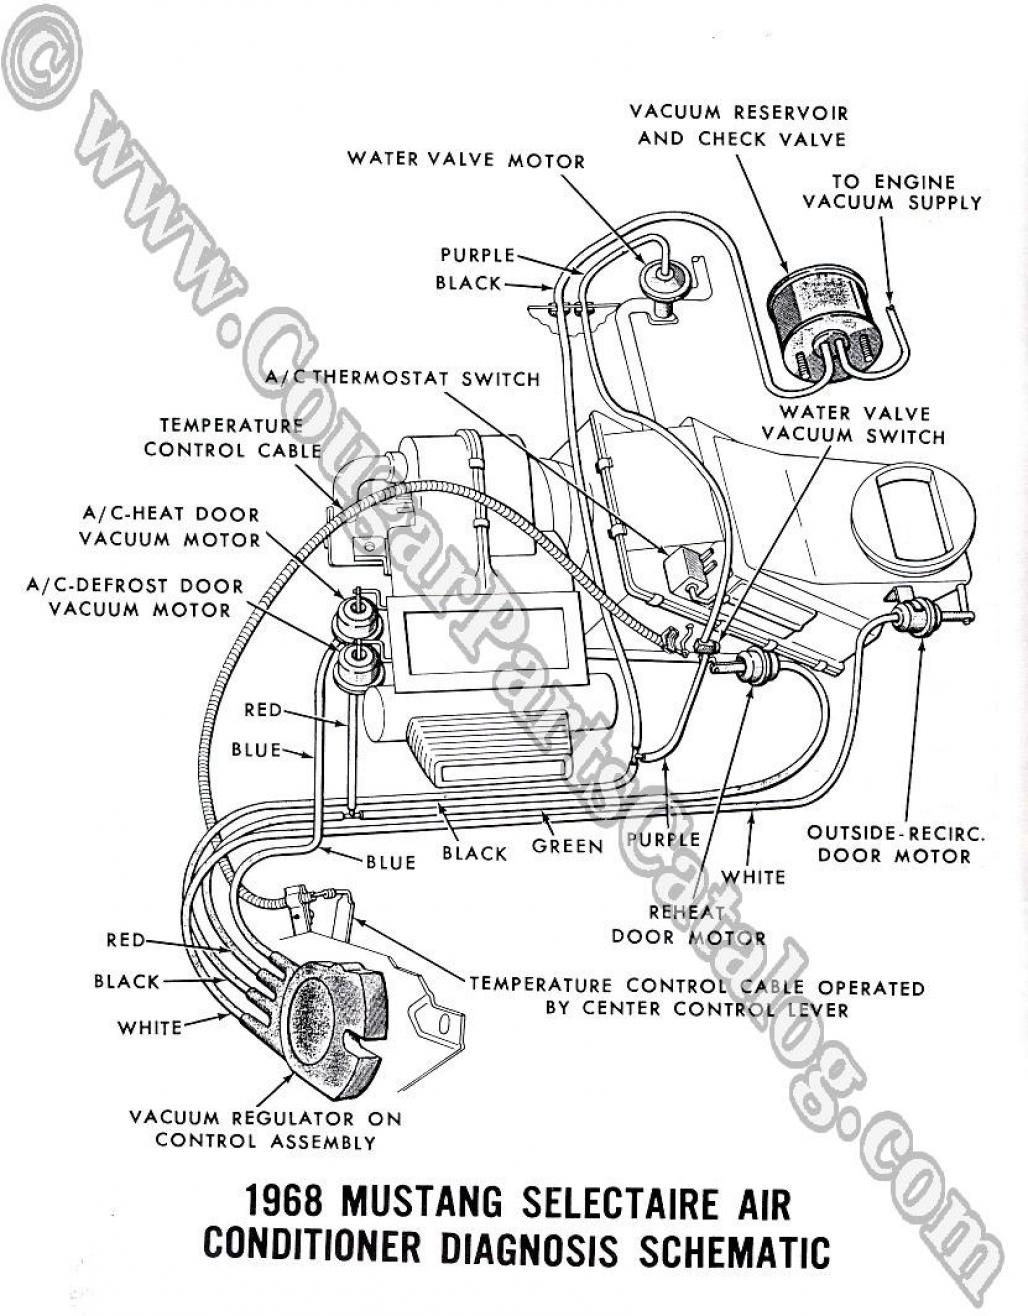 Motor Parts Diagram Additionally 2000 Ford Mustang Fuse